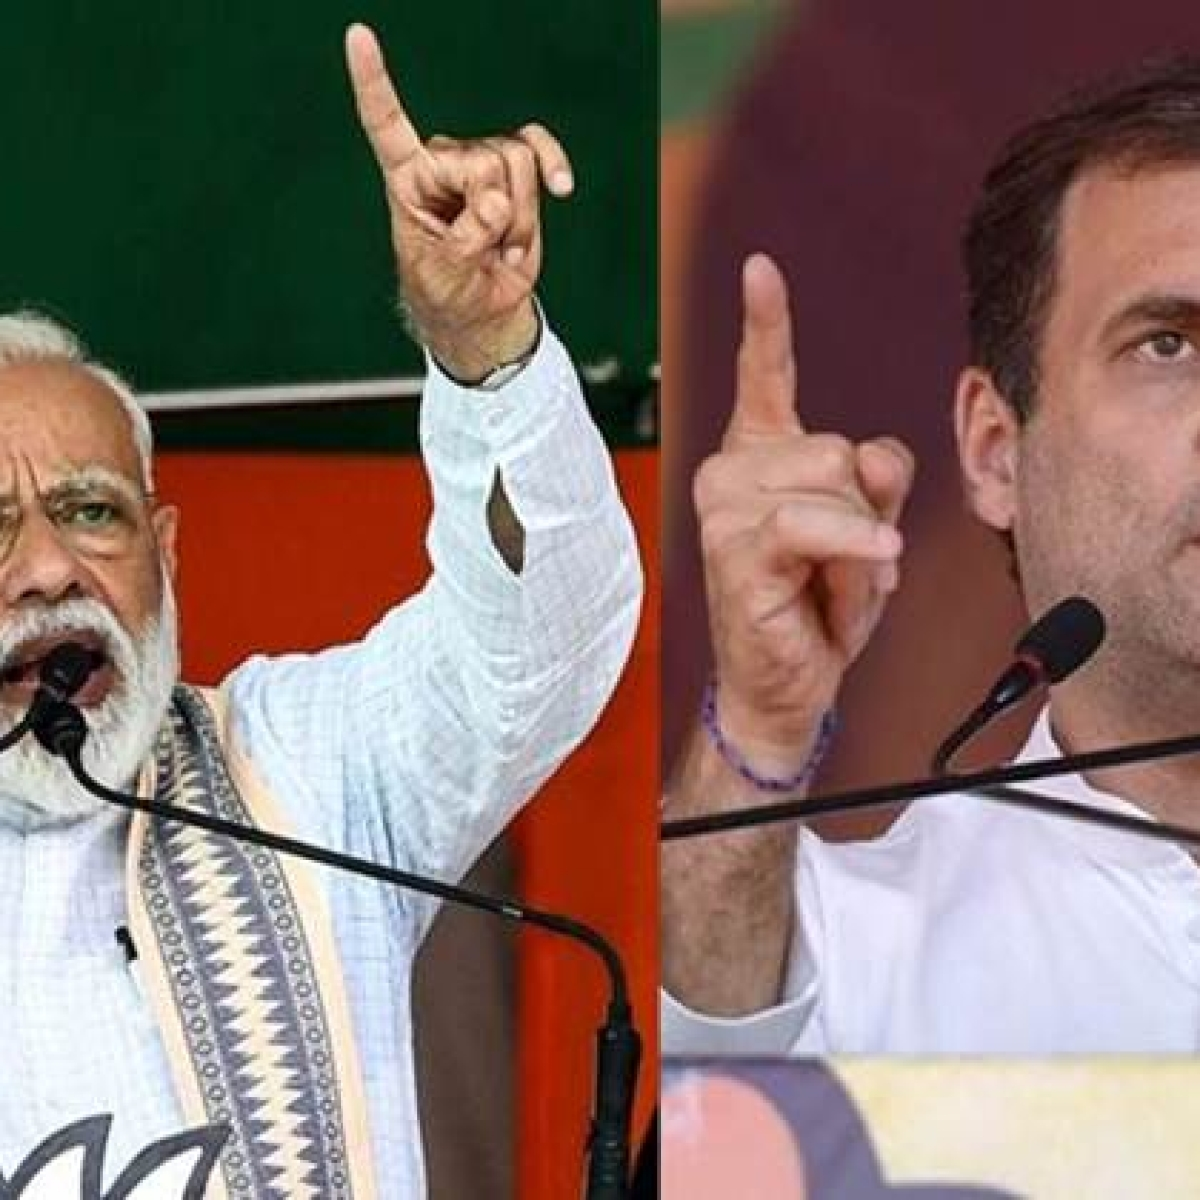 4 Years of Demonetisation: BJP brags of cutting black money, Congress sees 'crony capitalist' ploy